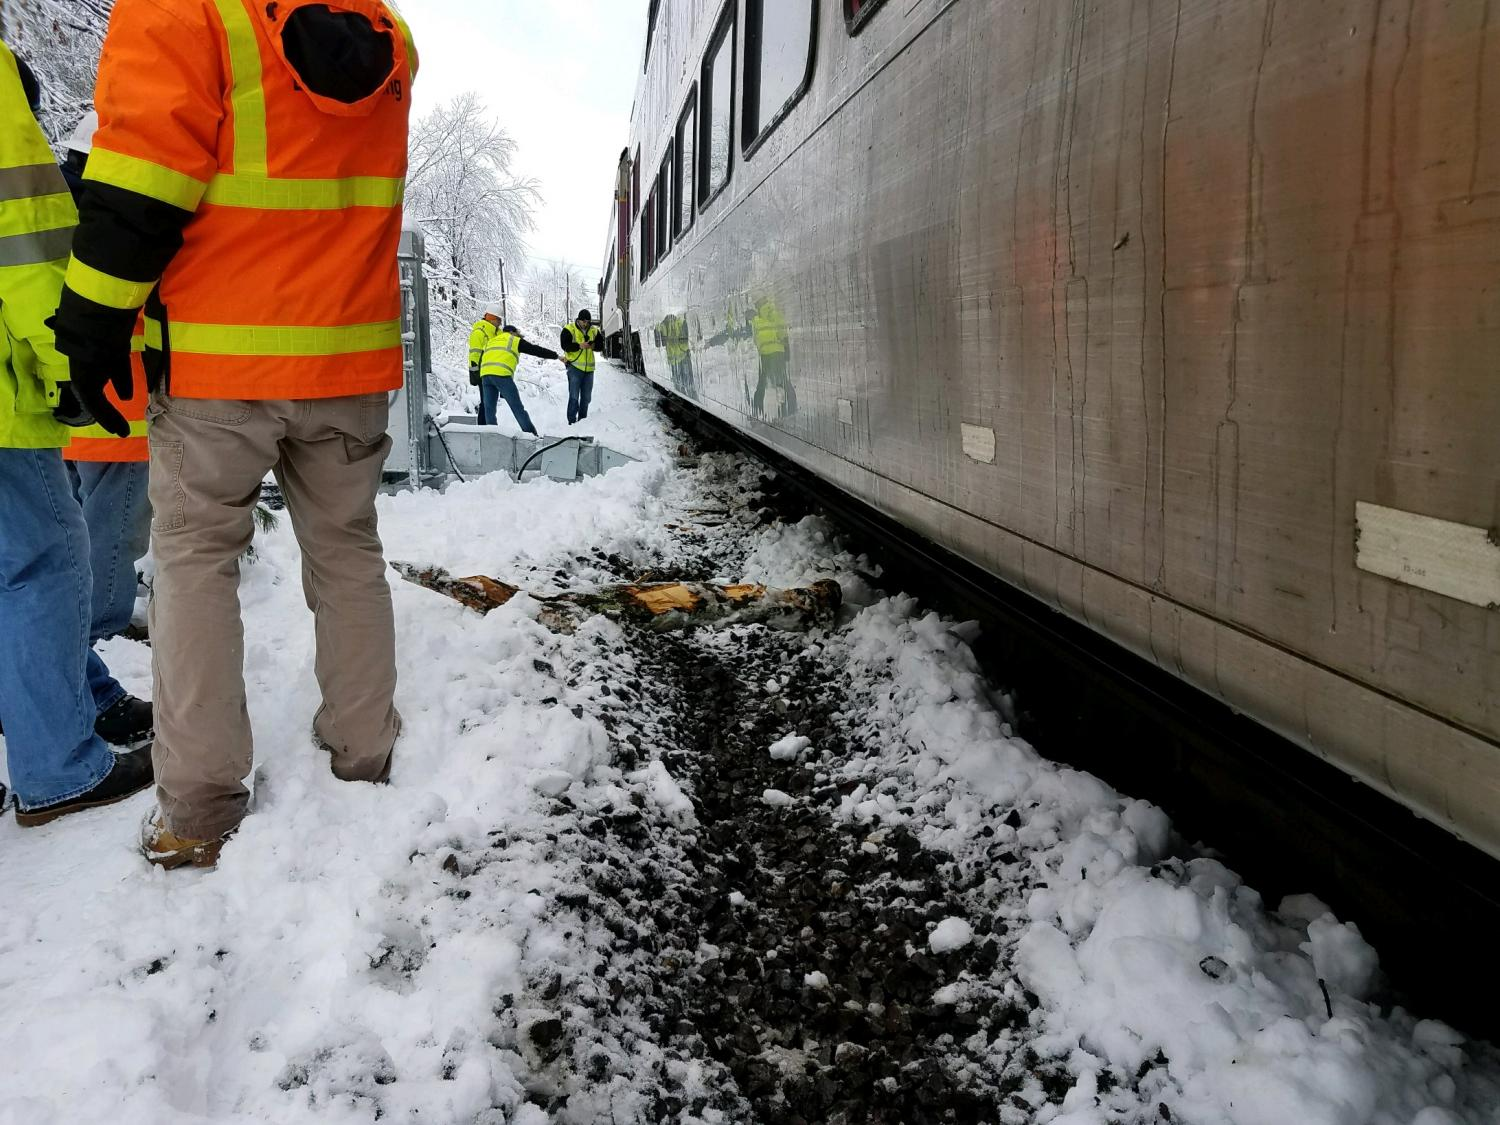 A commuter rail train on the right, with crewpeople on the left, attending to the derailment issues.